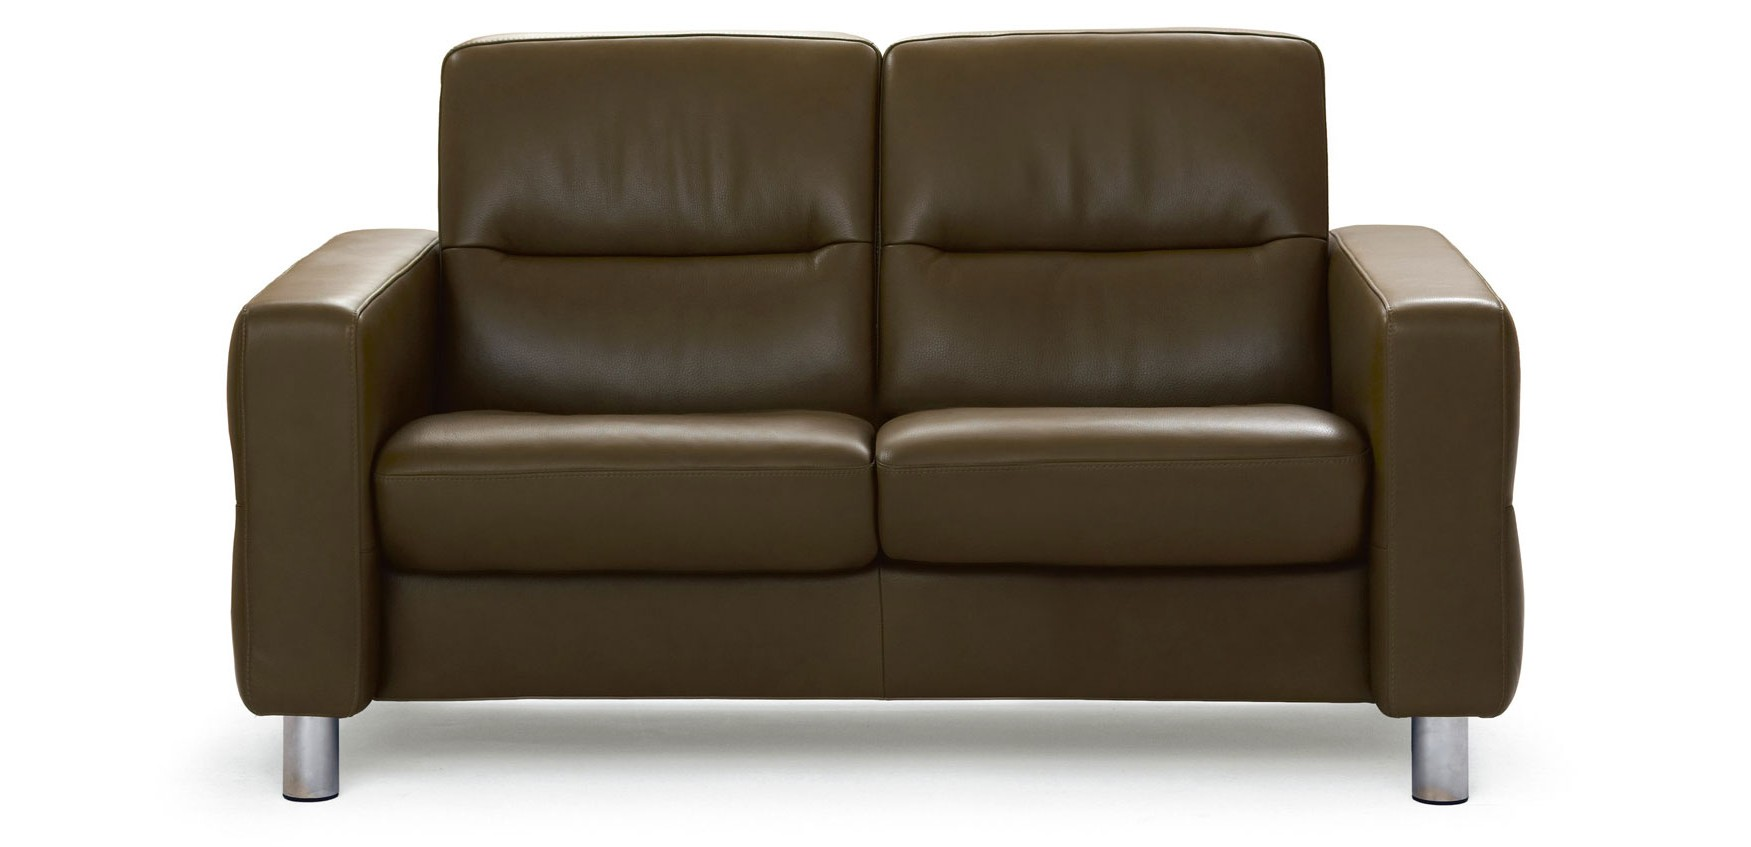 Sofa Aktion Echtes Leder Zum Stoffpreis House Of Comfort